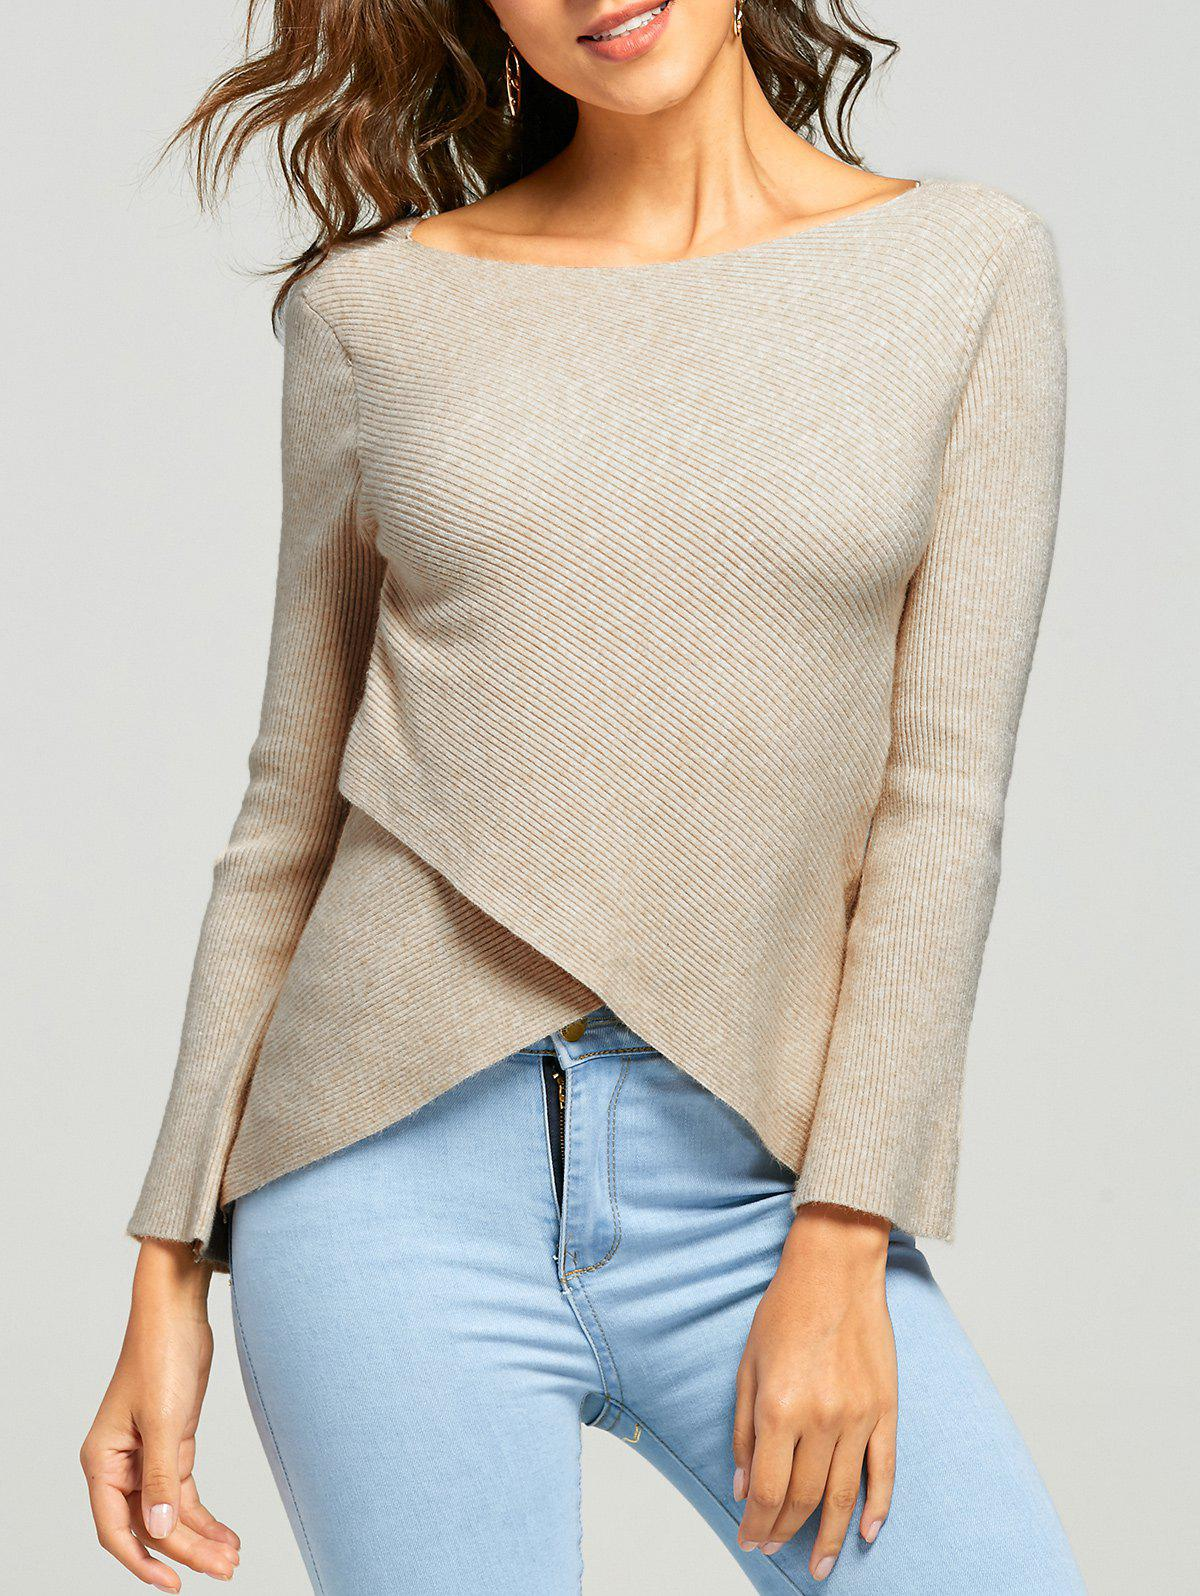 Ribbed Overlap Boat Neck Knitwear 229334001